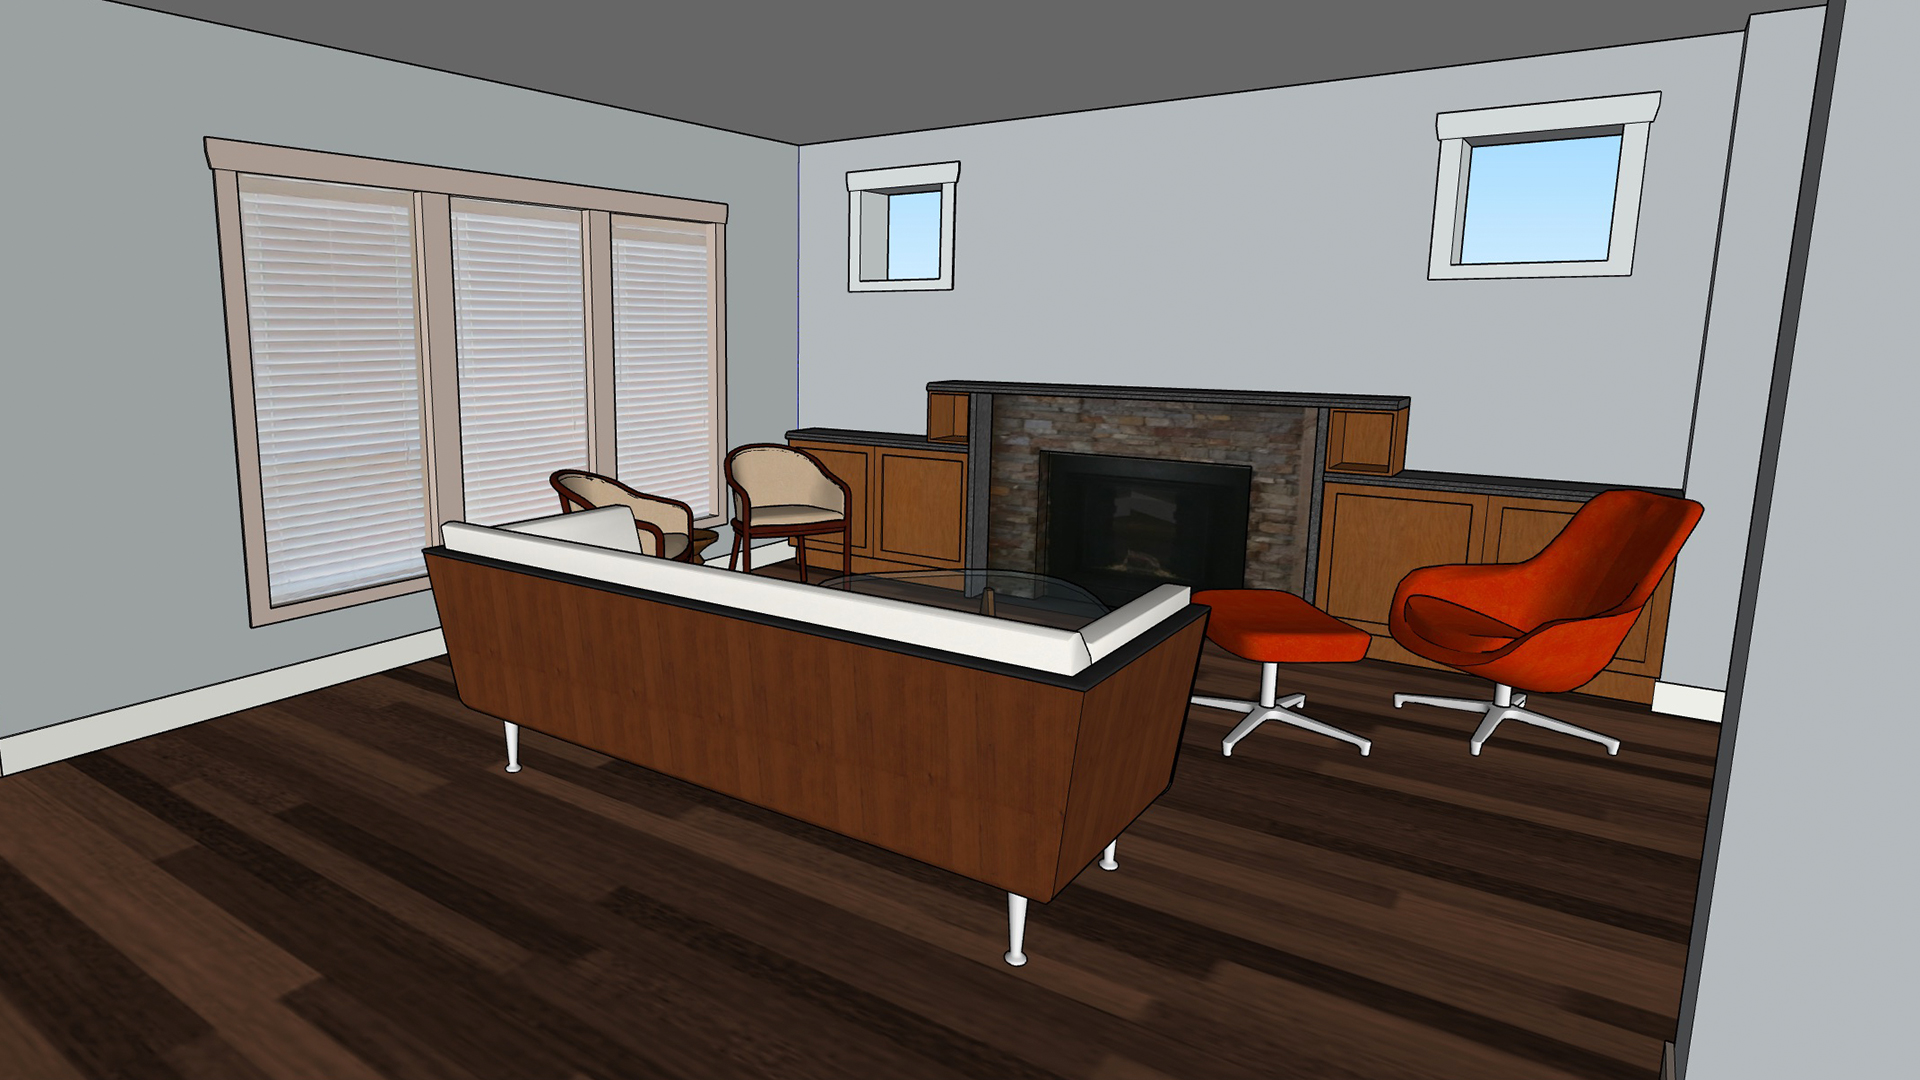 SketchUp: Modeling Interiors from Photos